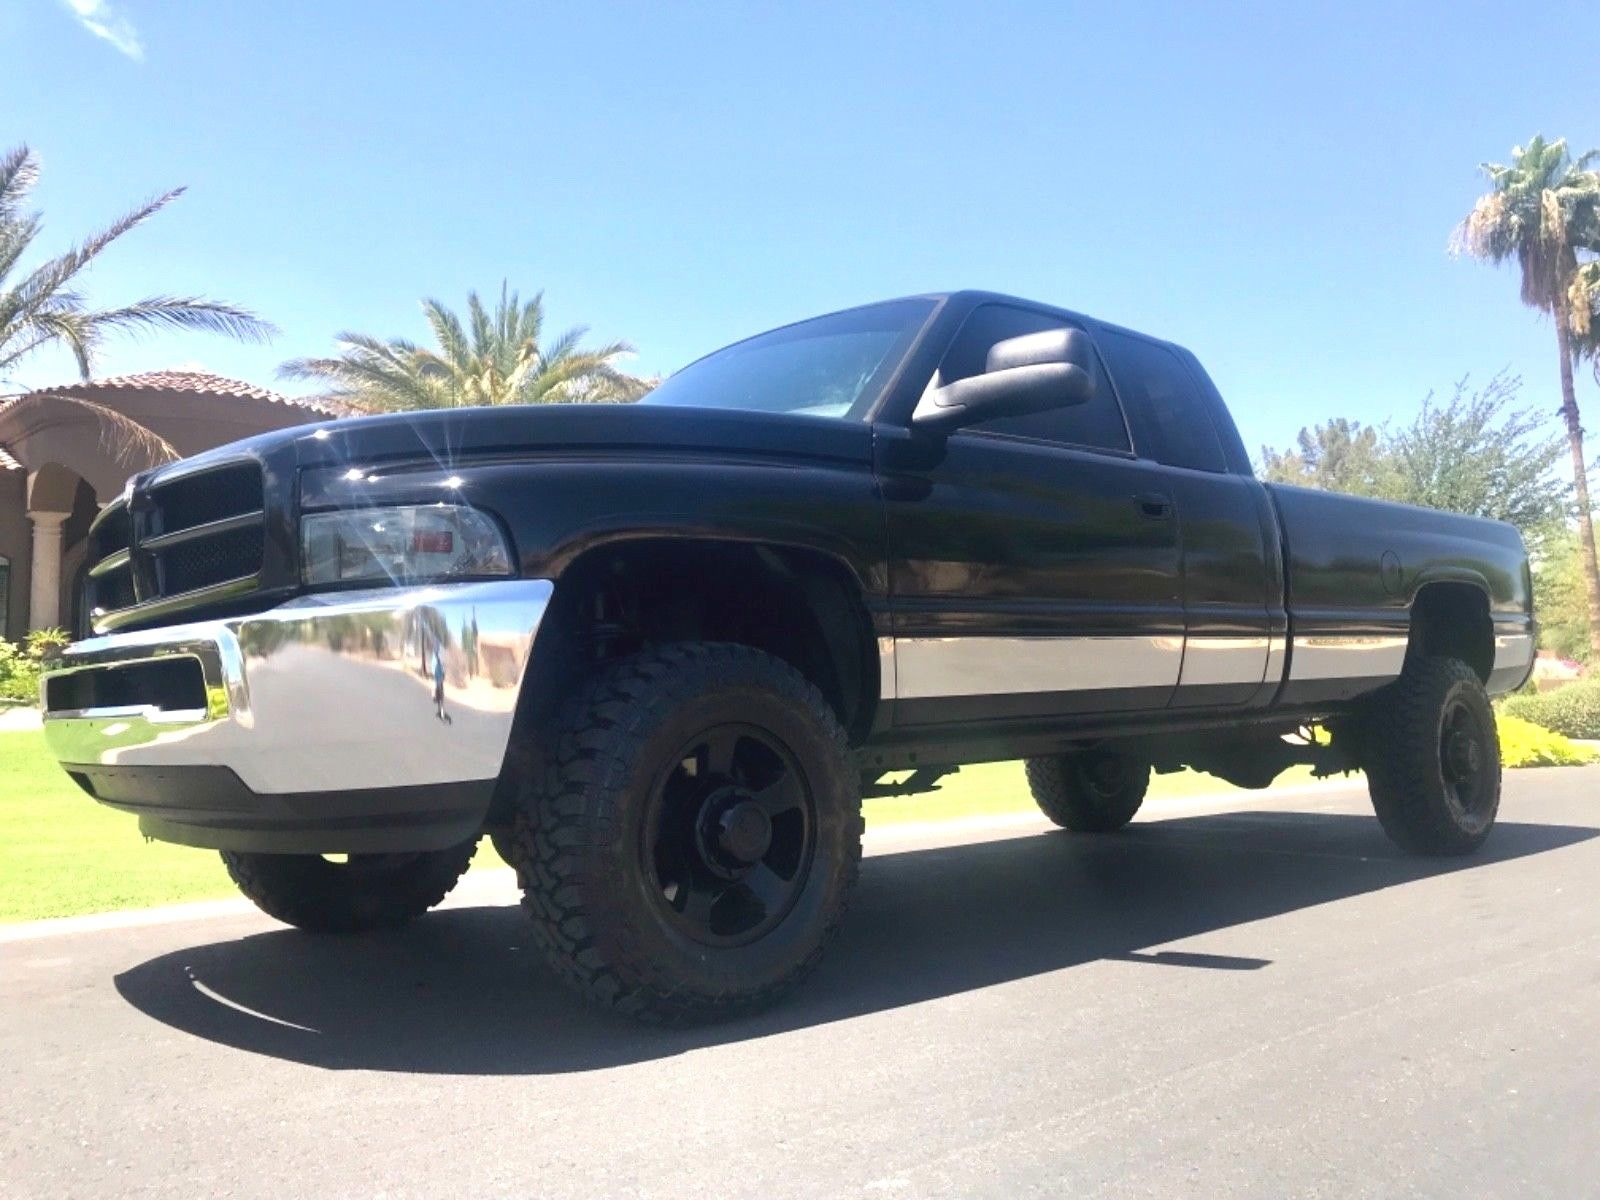 new parts 2001 Dodge Ram 2500 2500 Quad Cab lifted for sale